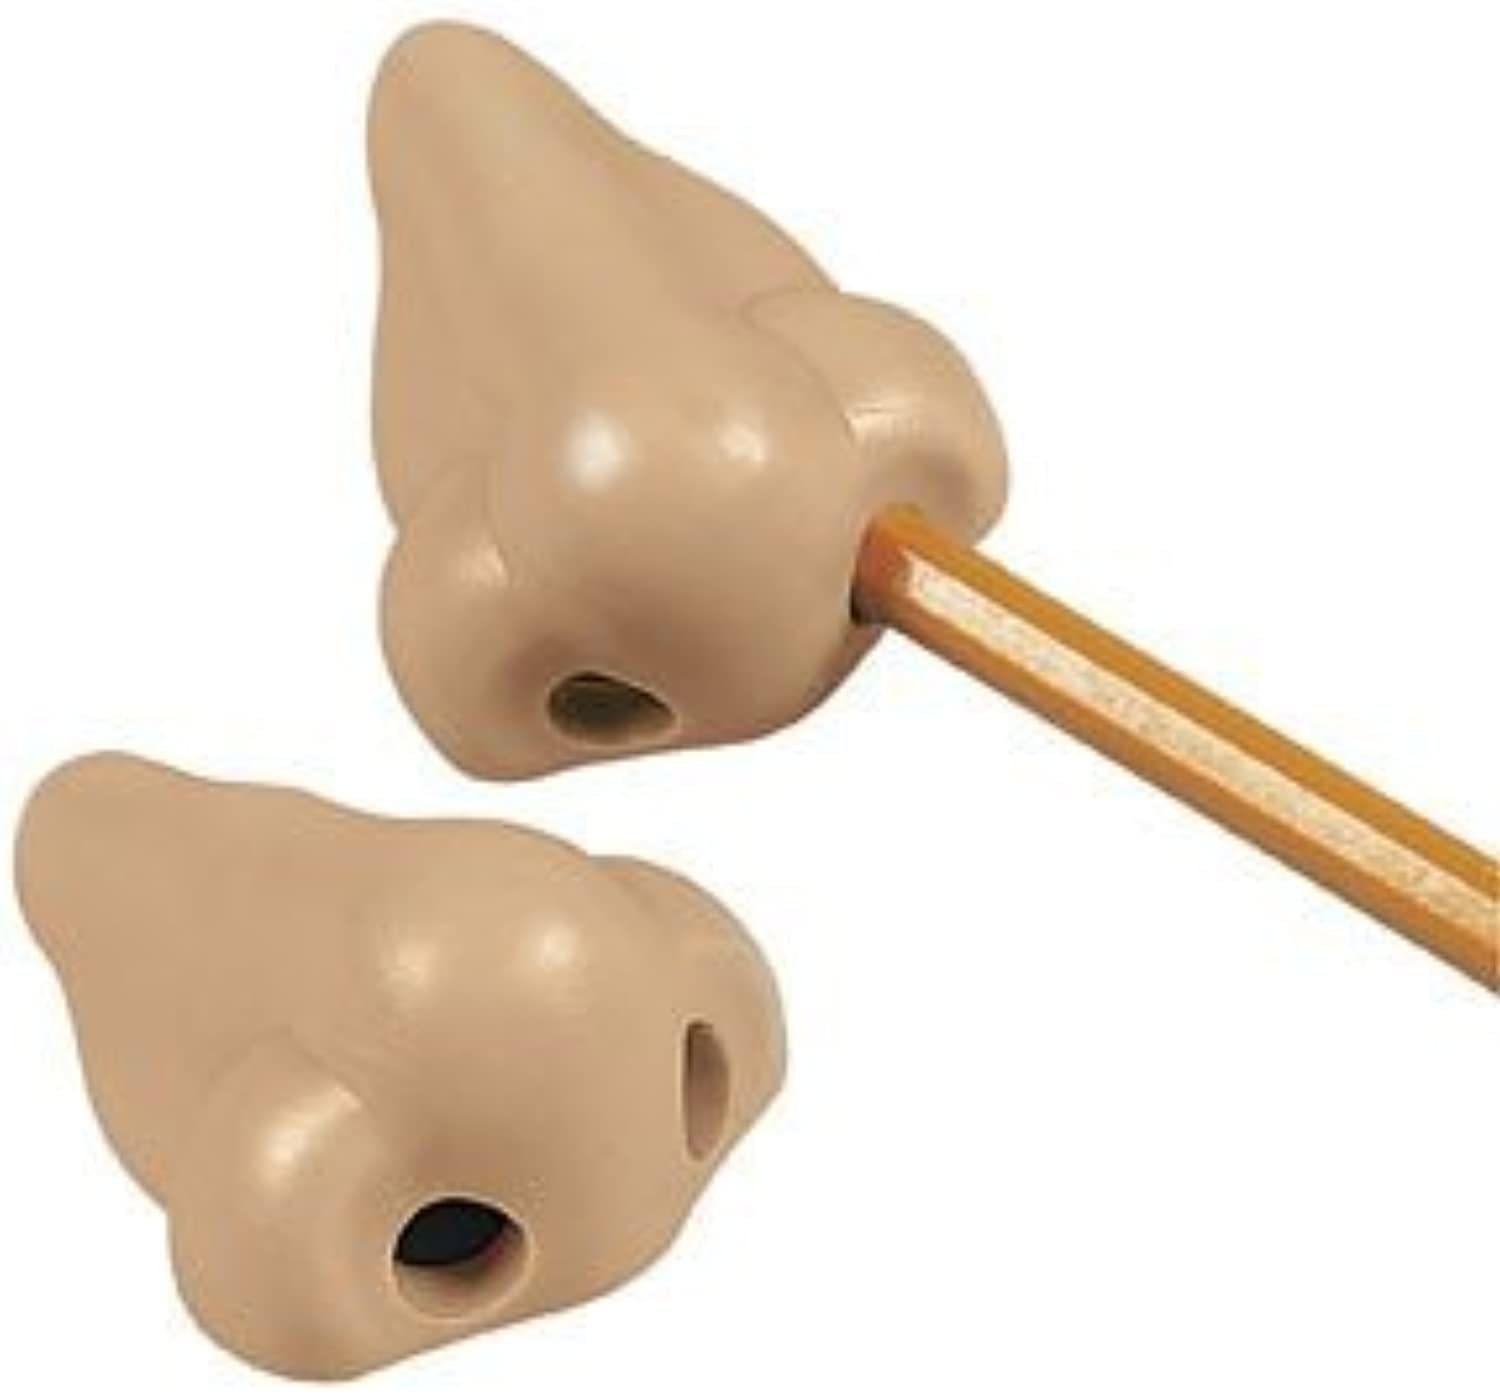 NOSE PENCIL SHARPENERS - 3 pack - great stocking stuffers by Oriental Trading Company B0141MPWD2 | Adoptieren